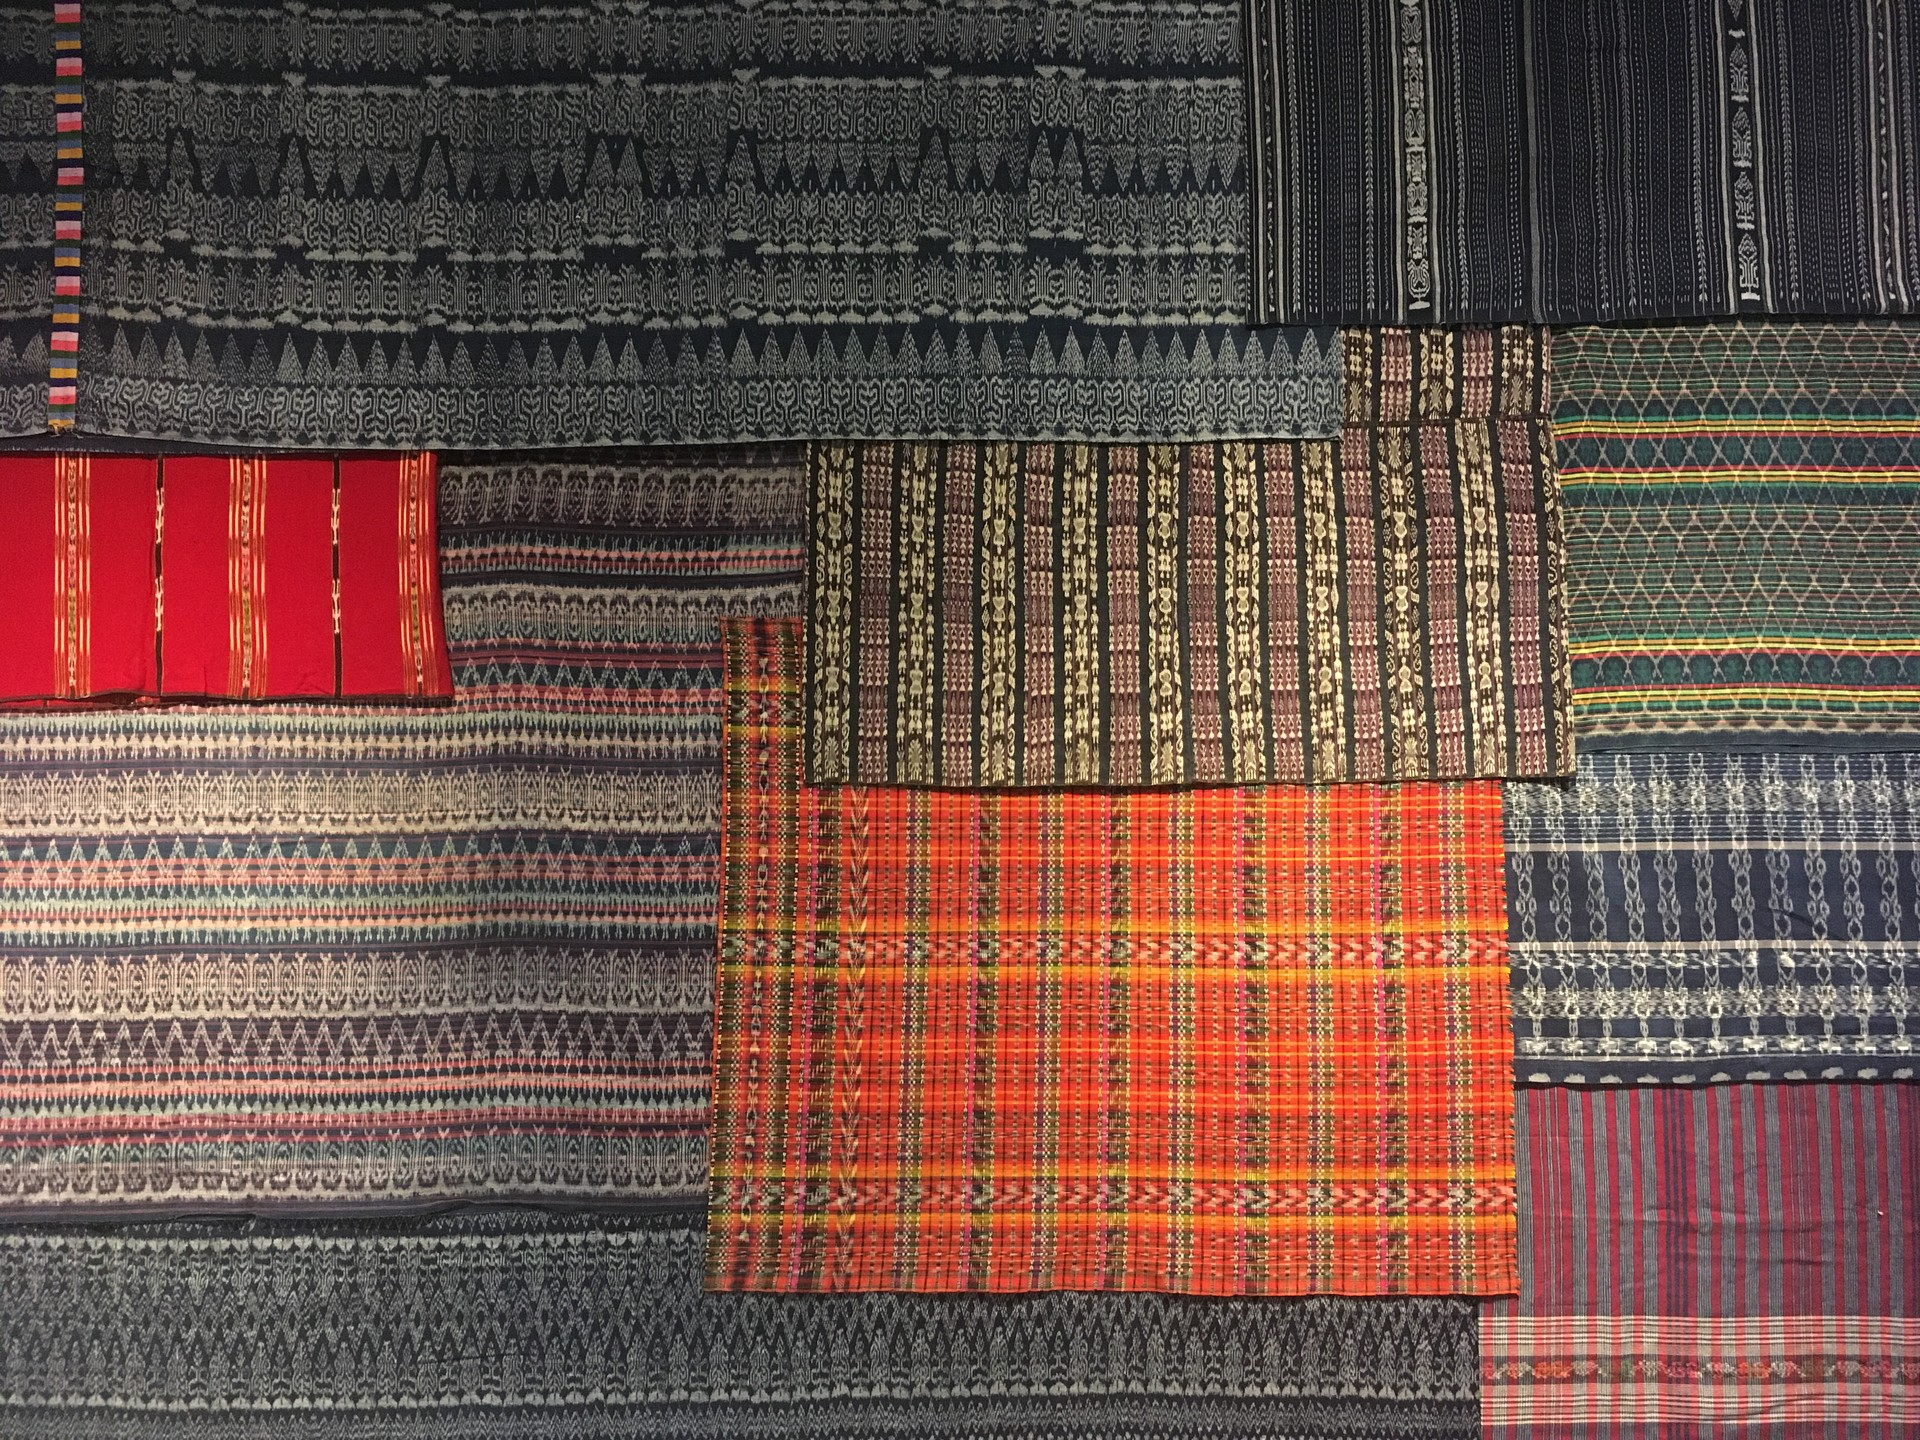 Behold the Wall of Skirts. These fabrics feature ikat, a dyeing technique used to pattern textiles that employs resist dyeing on the yarns prior to dyeing and weaving the fabric.